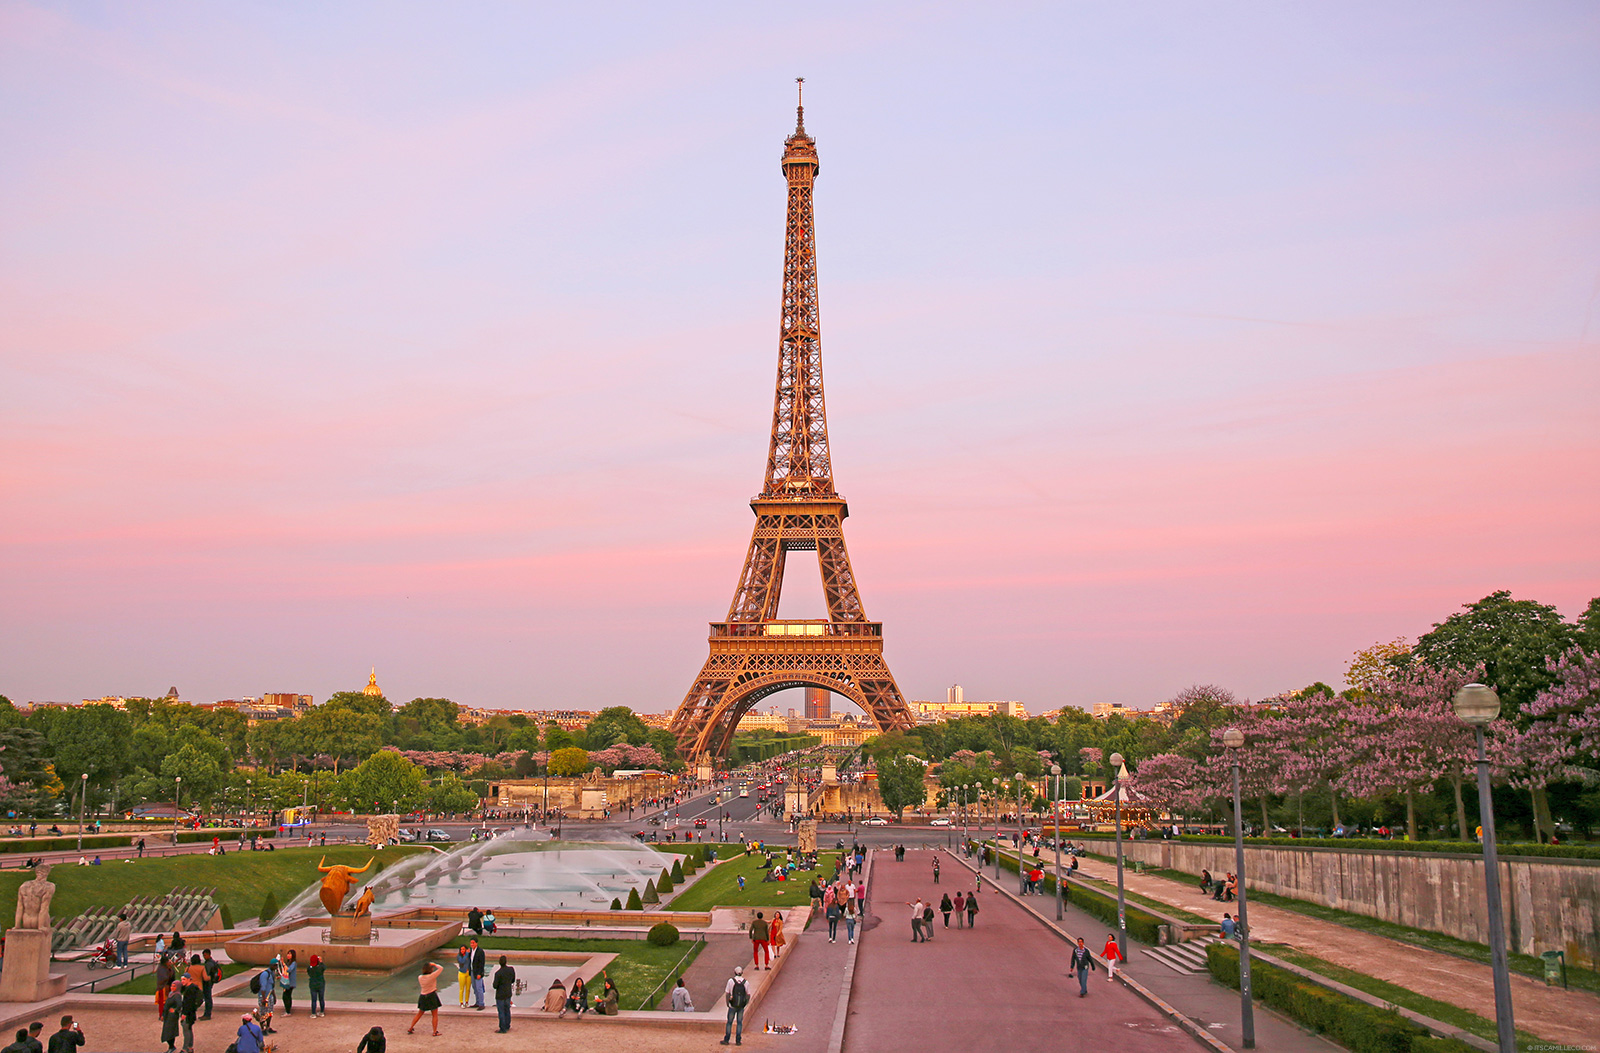 Eiffel Tower, Paris - www.itscamilleco.com